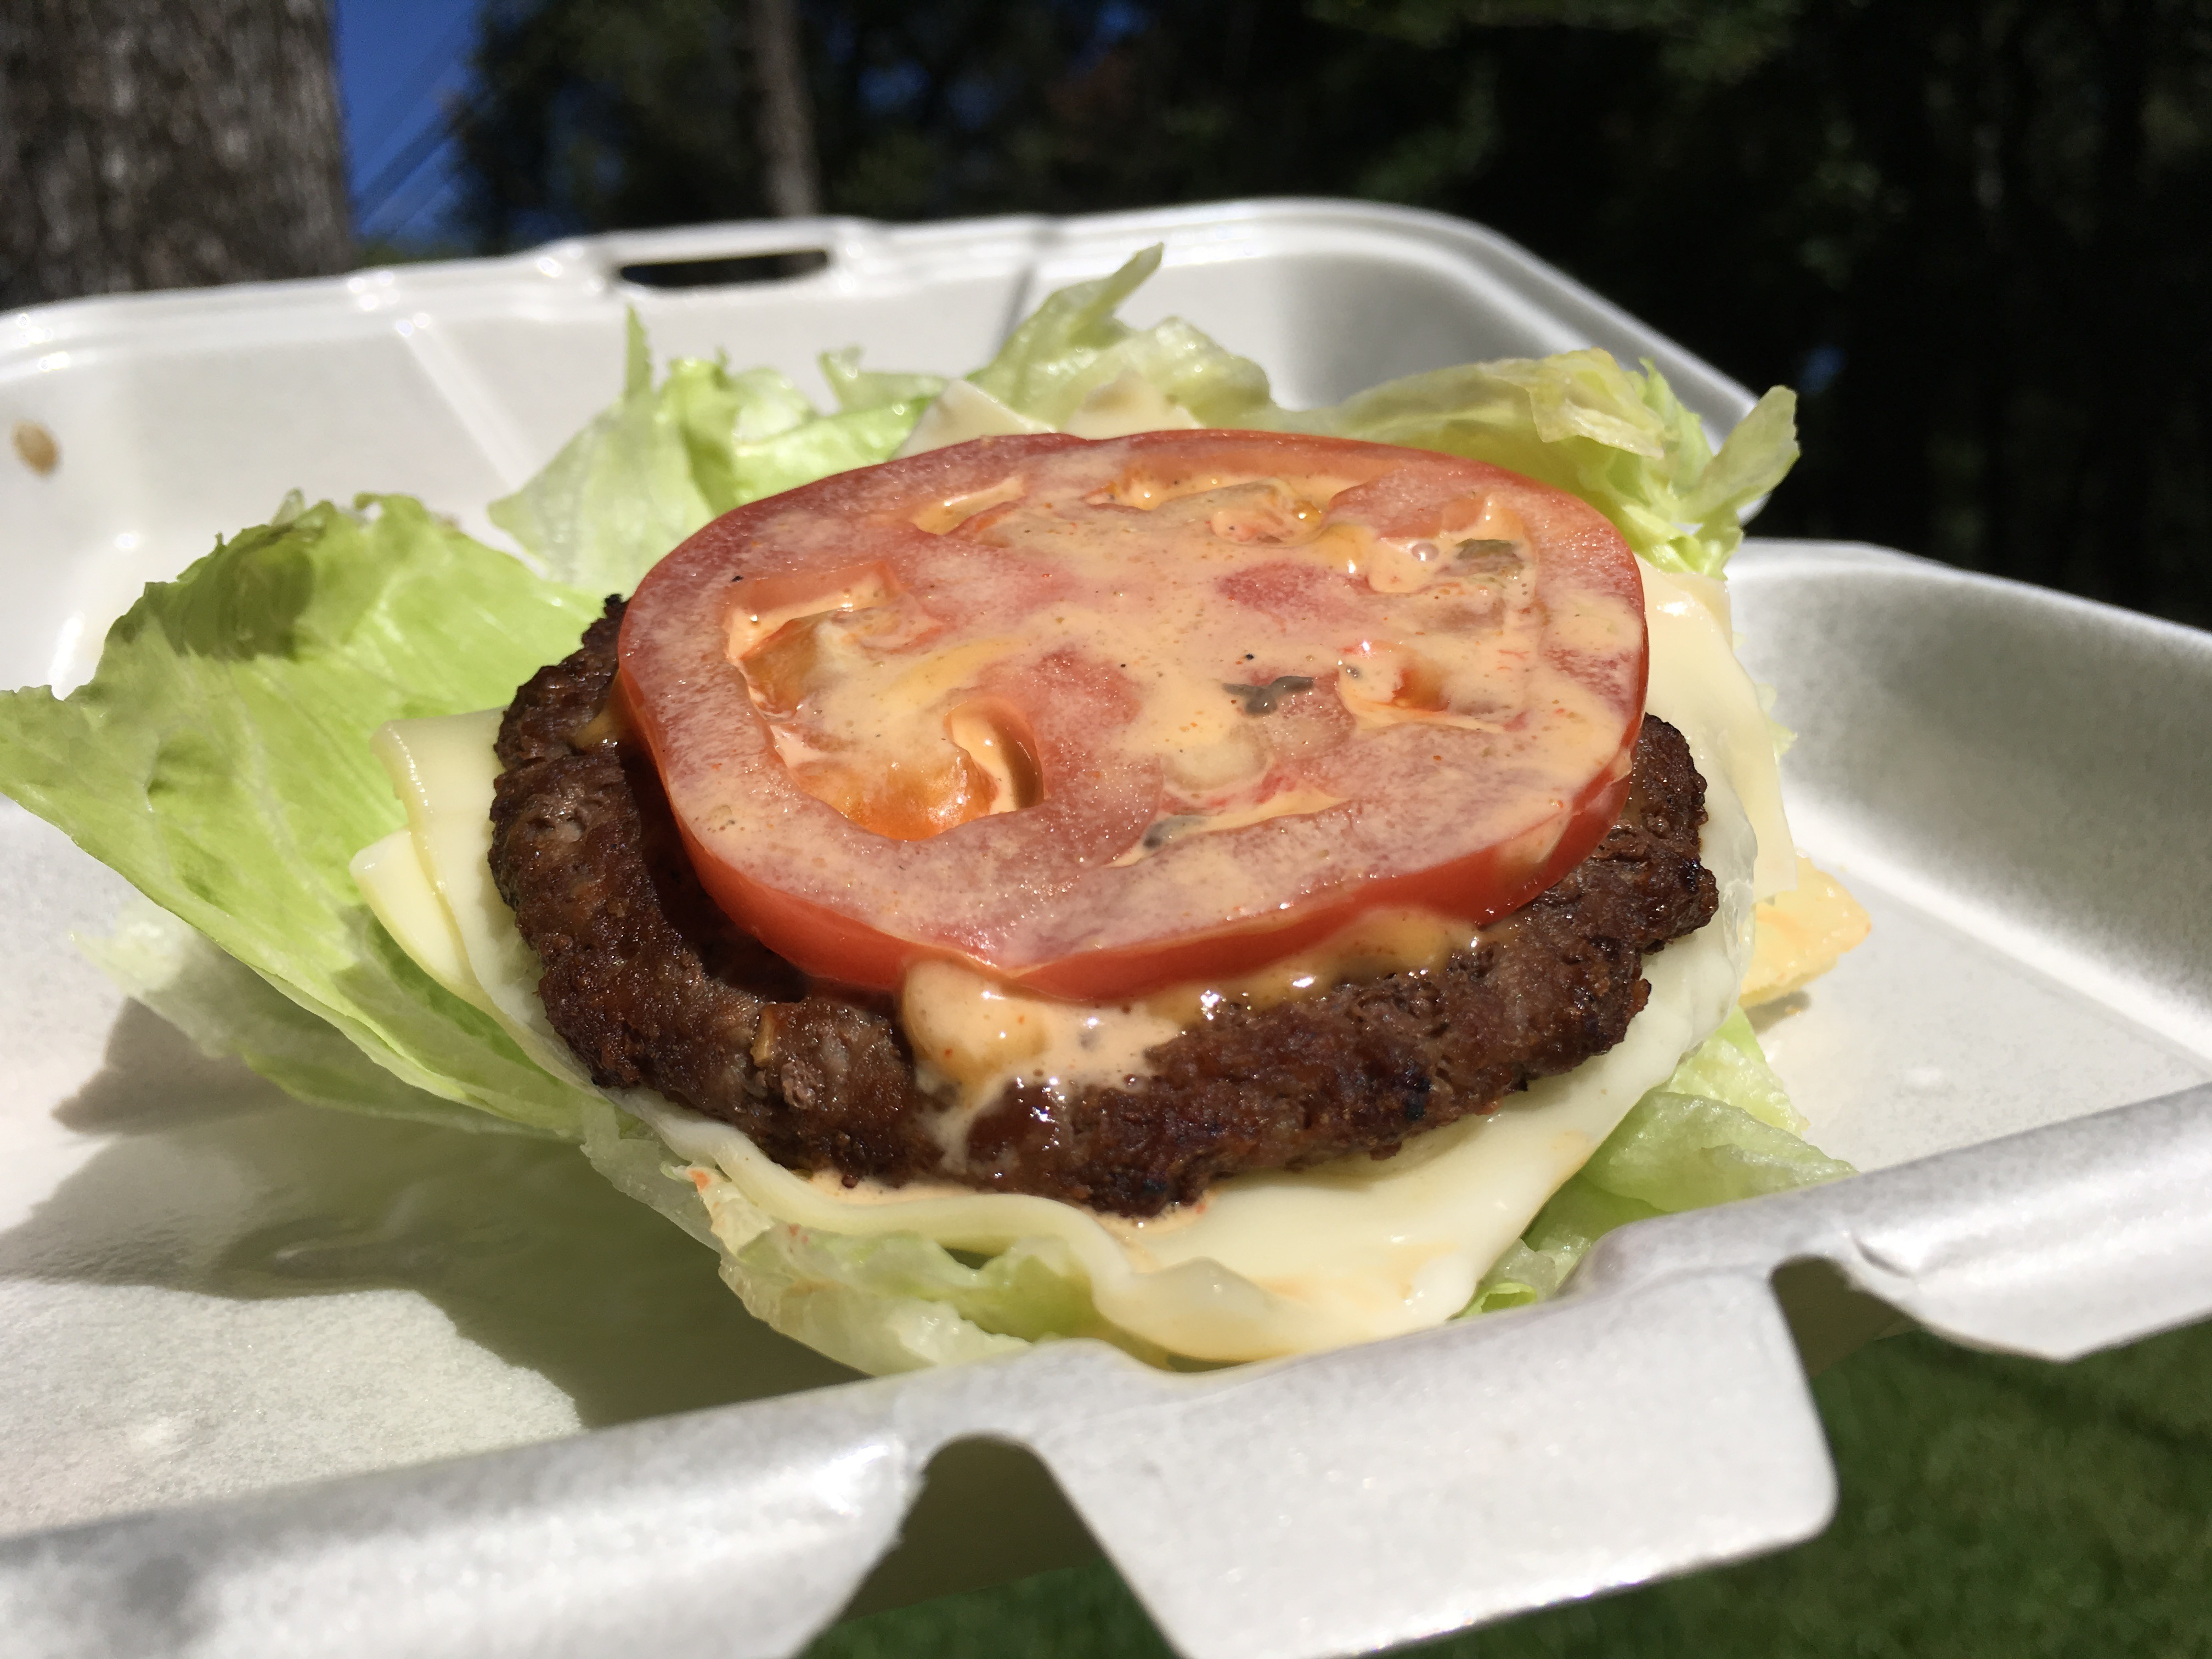 Lettuce wrapped low carb jalapeno double cheeseburger from Carl's Jr.